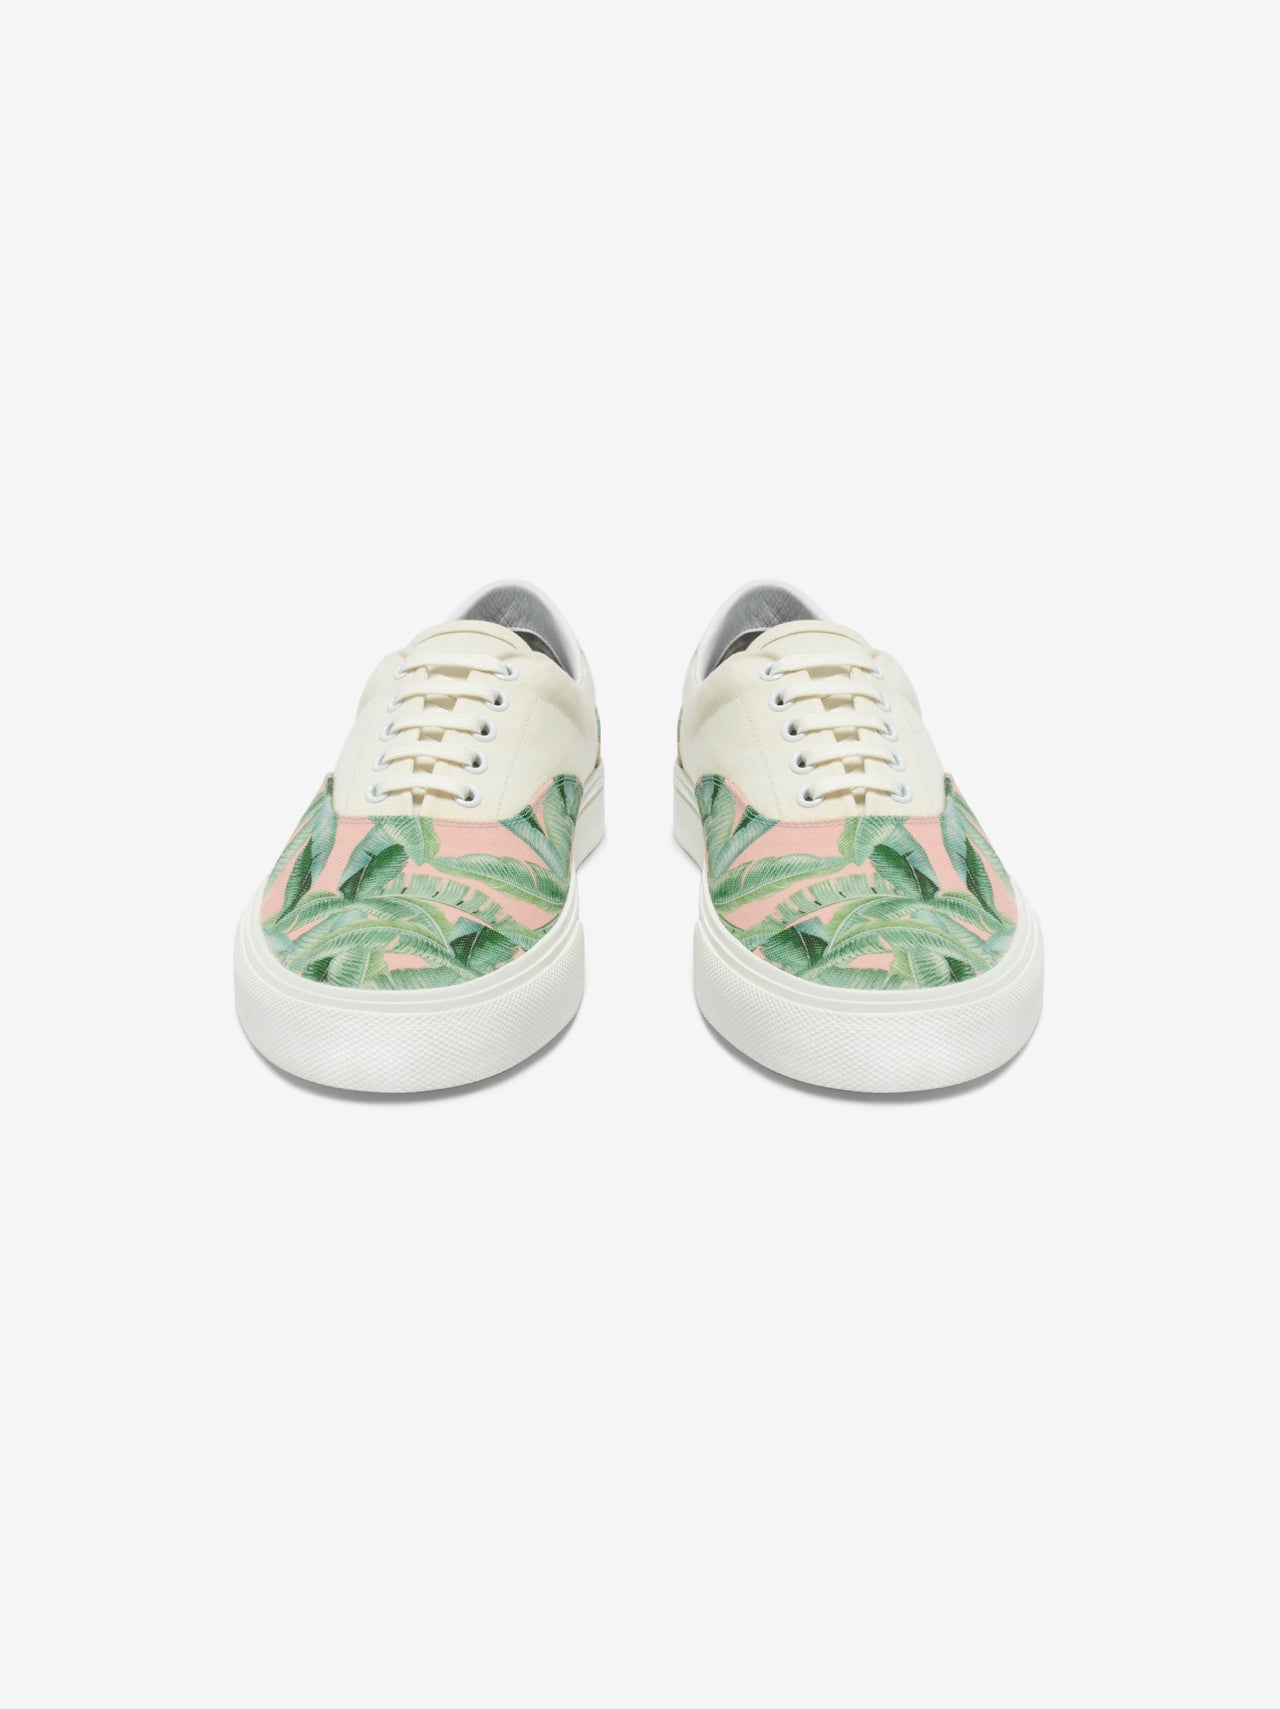 Small Banana Leaf Lace Up - Green / Peach / Natural